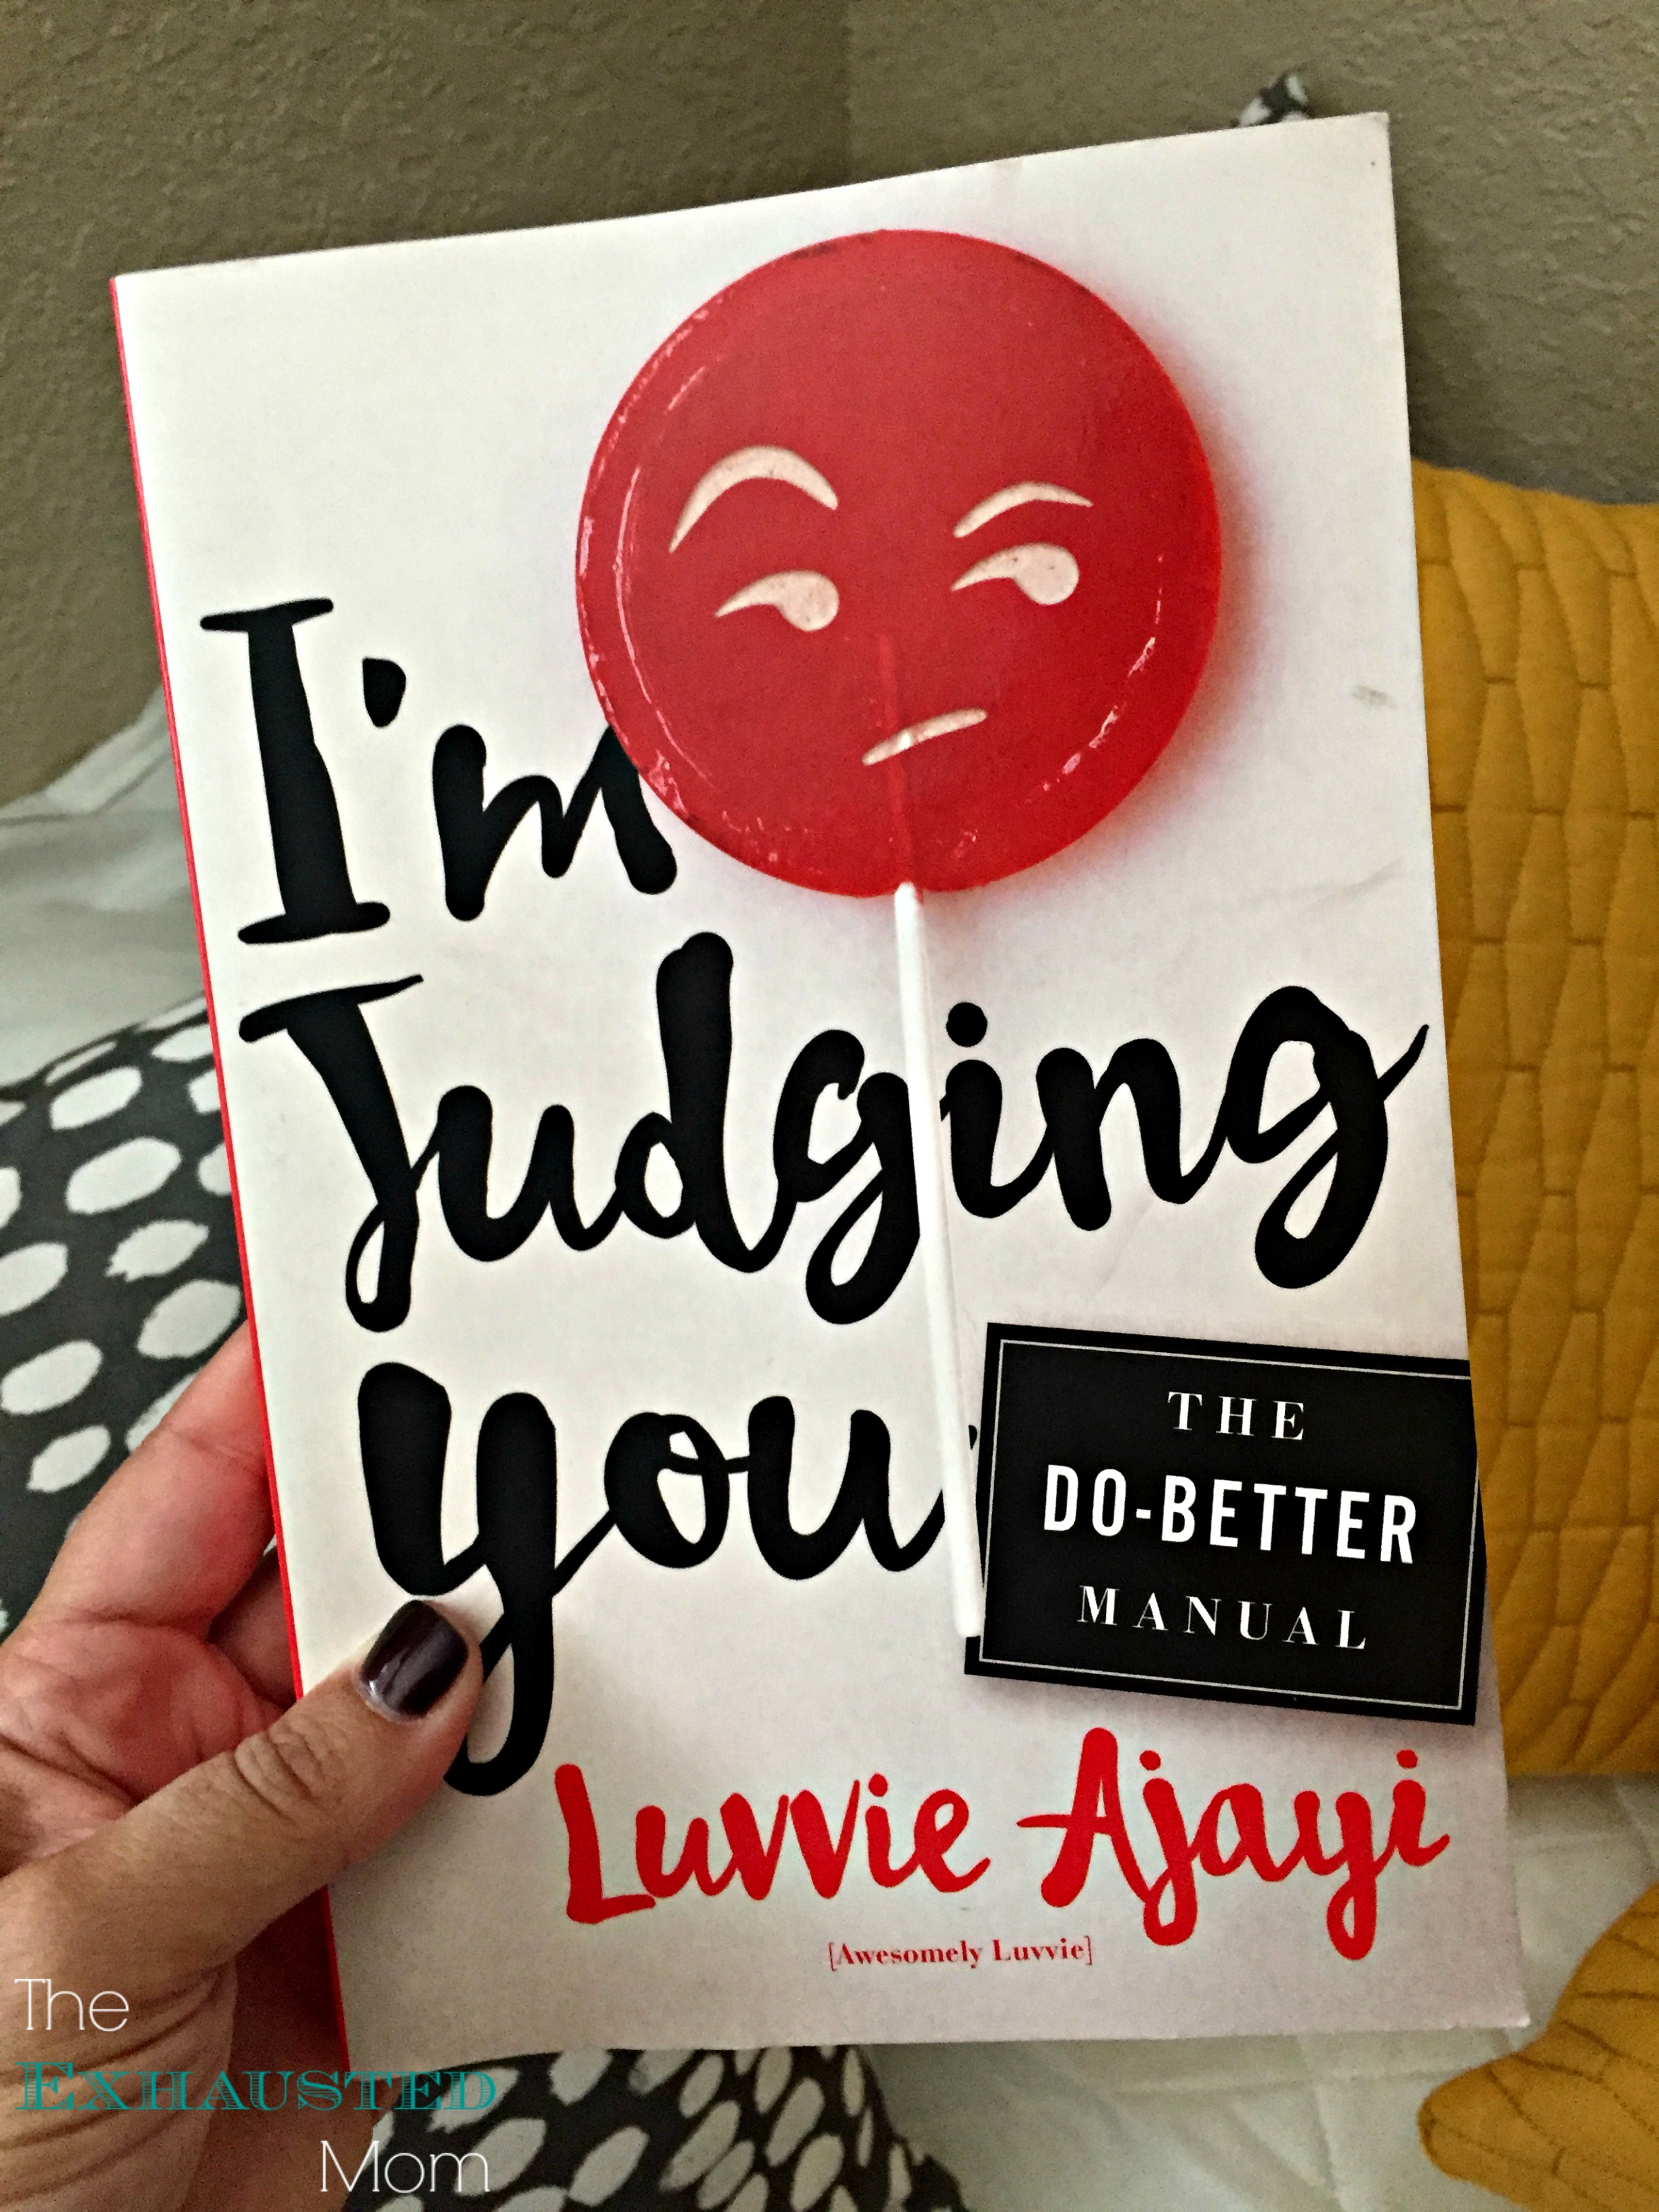 I'm Judging You - The Do-Better Manual